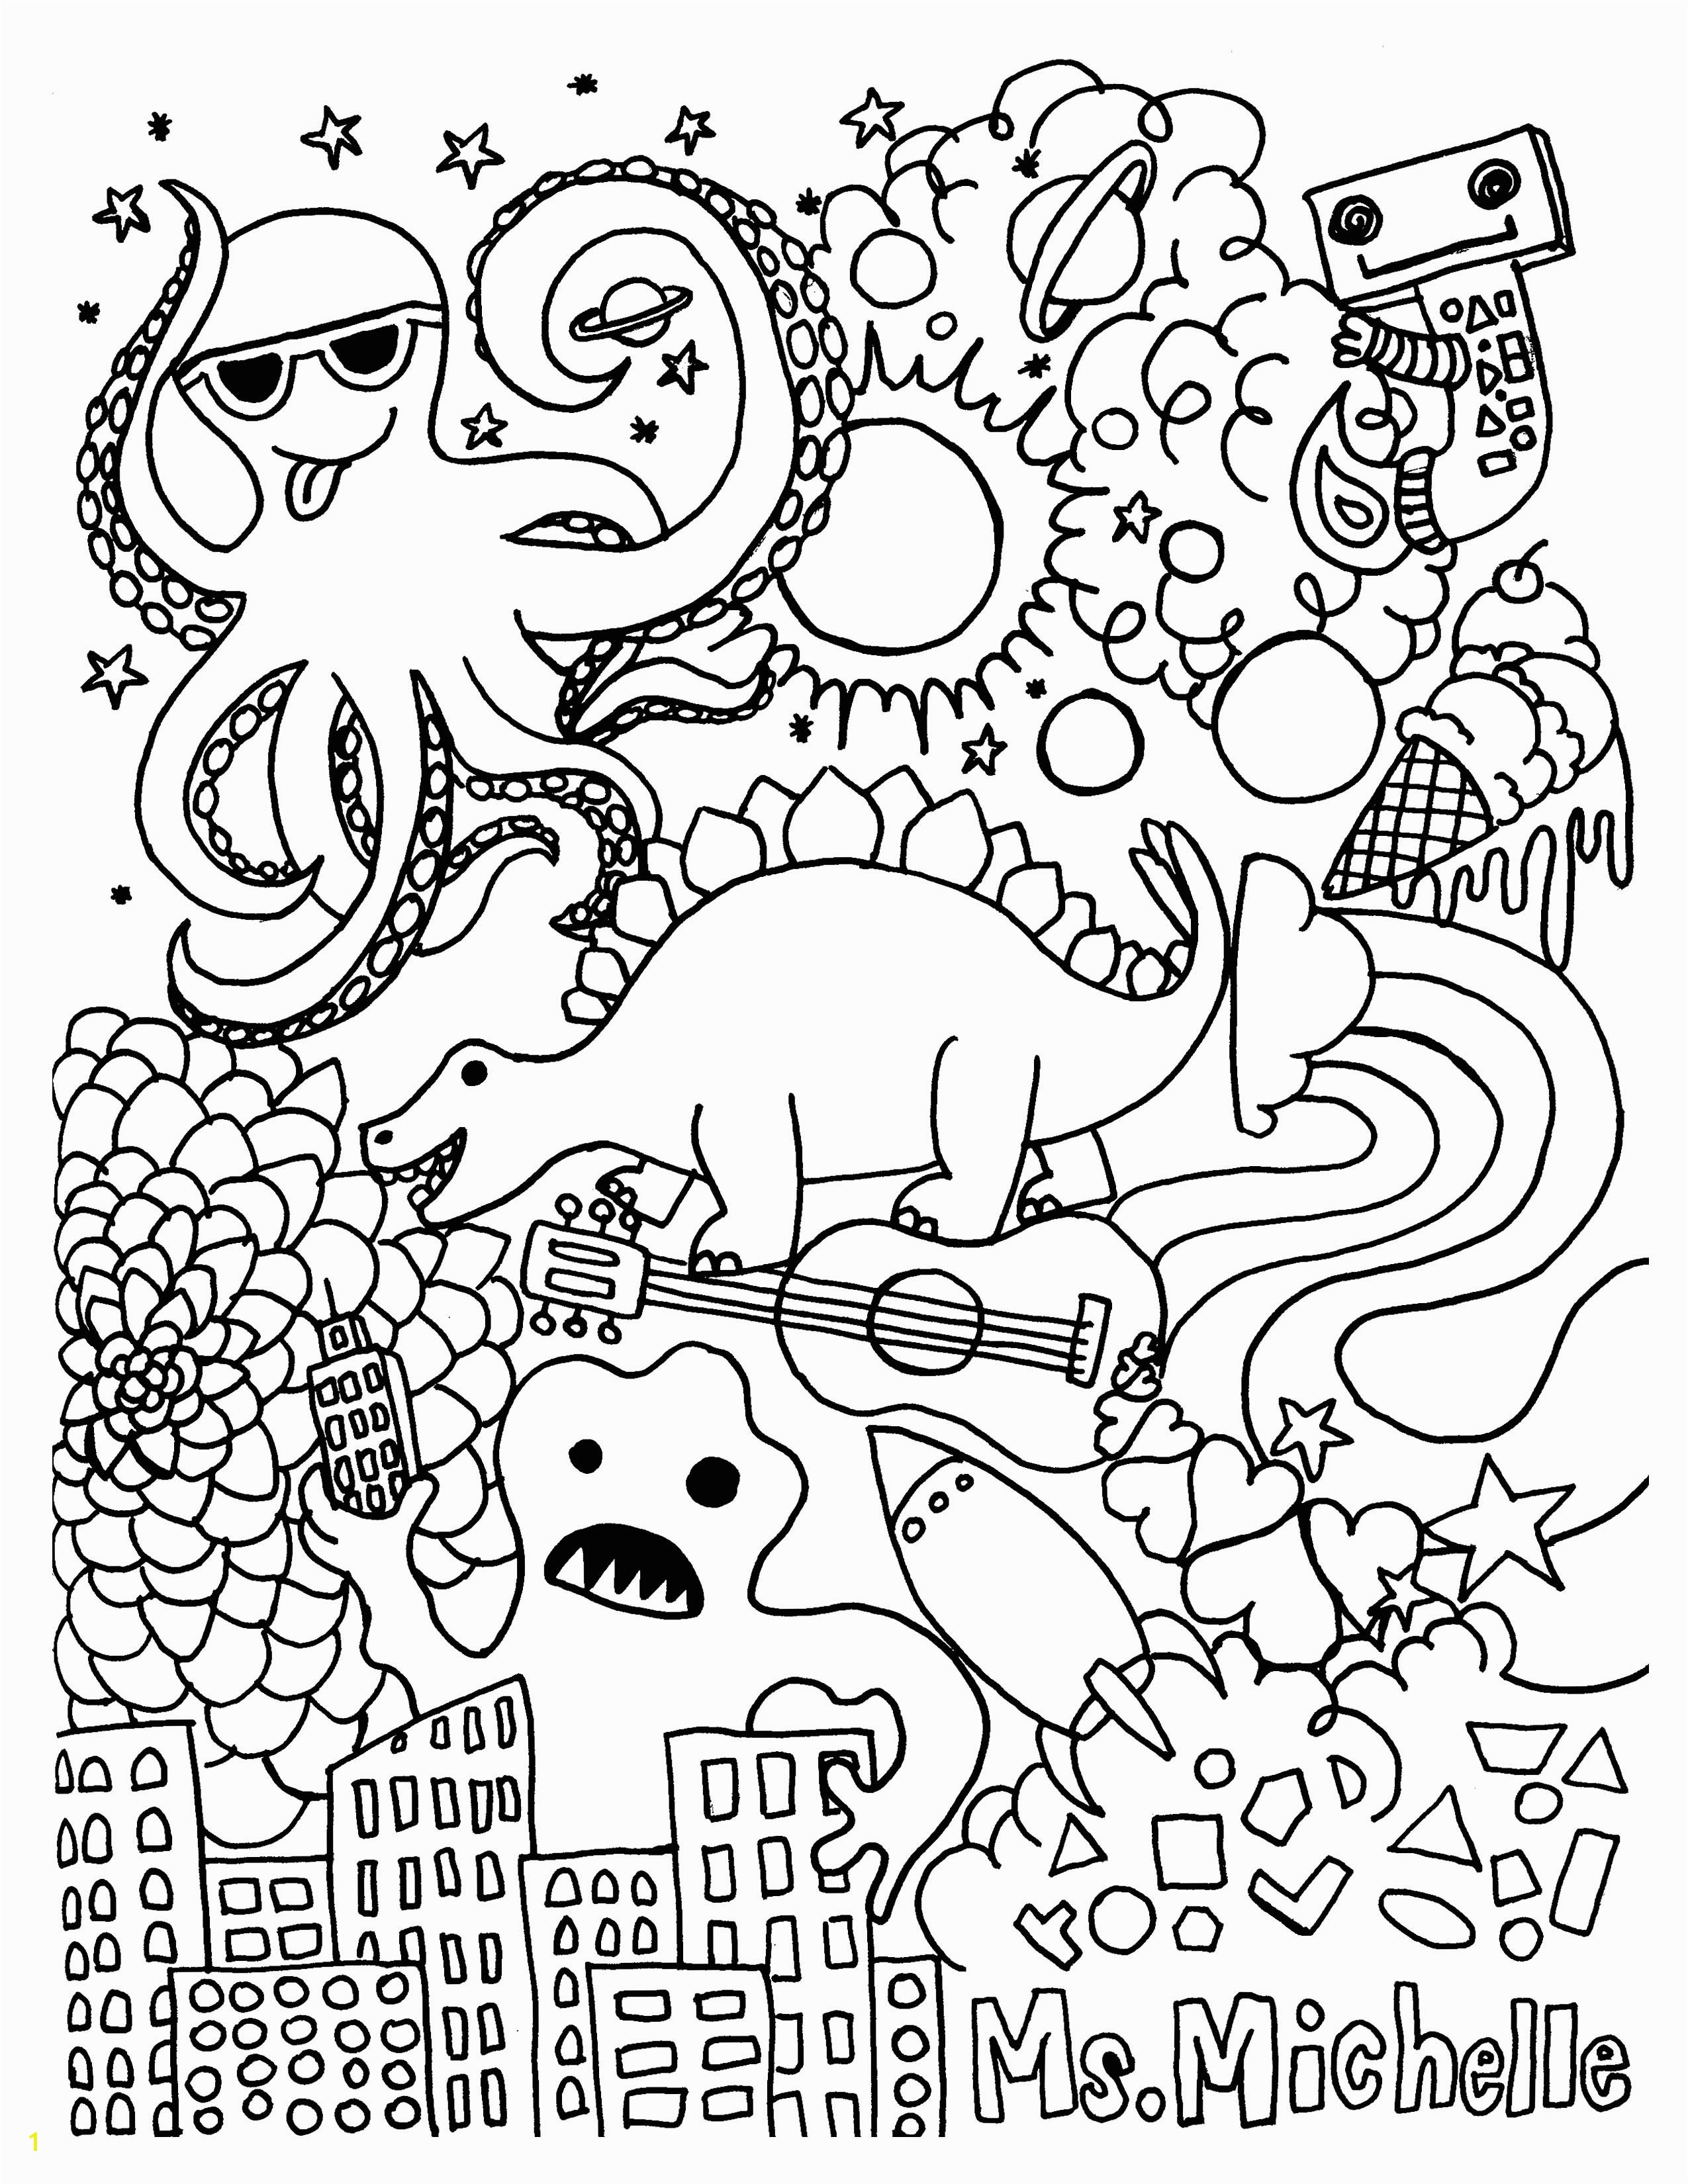 Beautiful free coloring page of girvanna pokemon 8